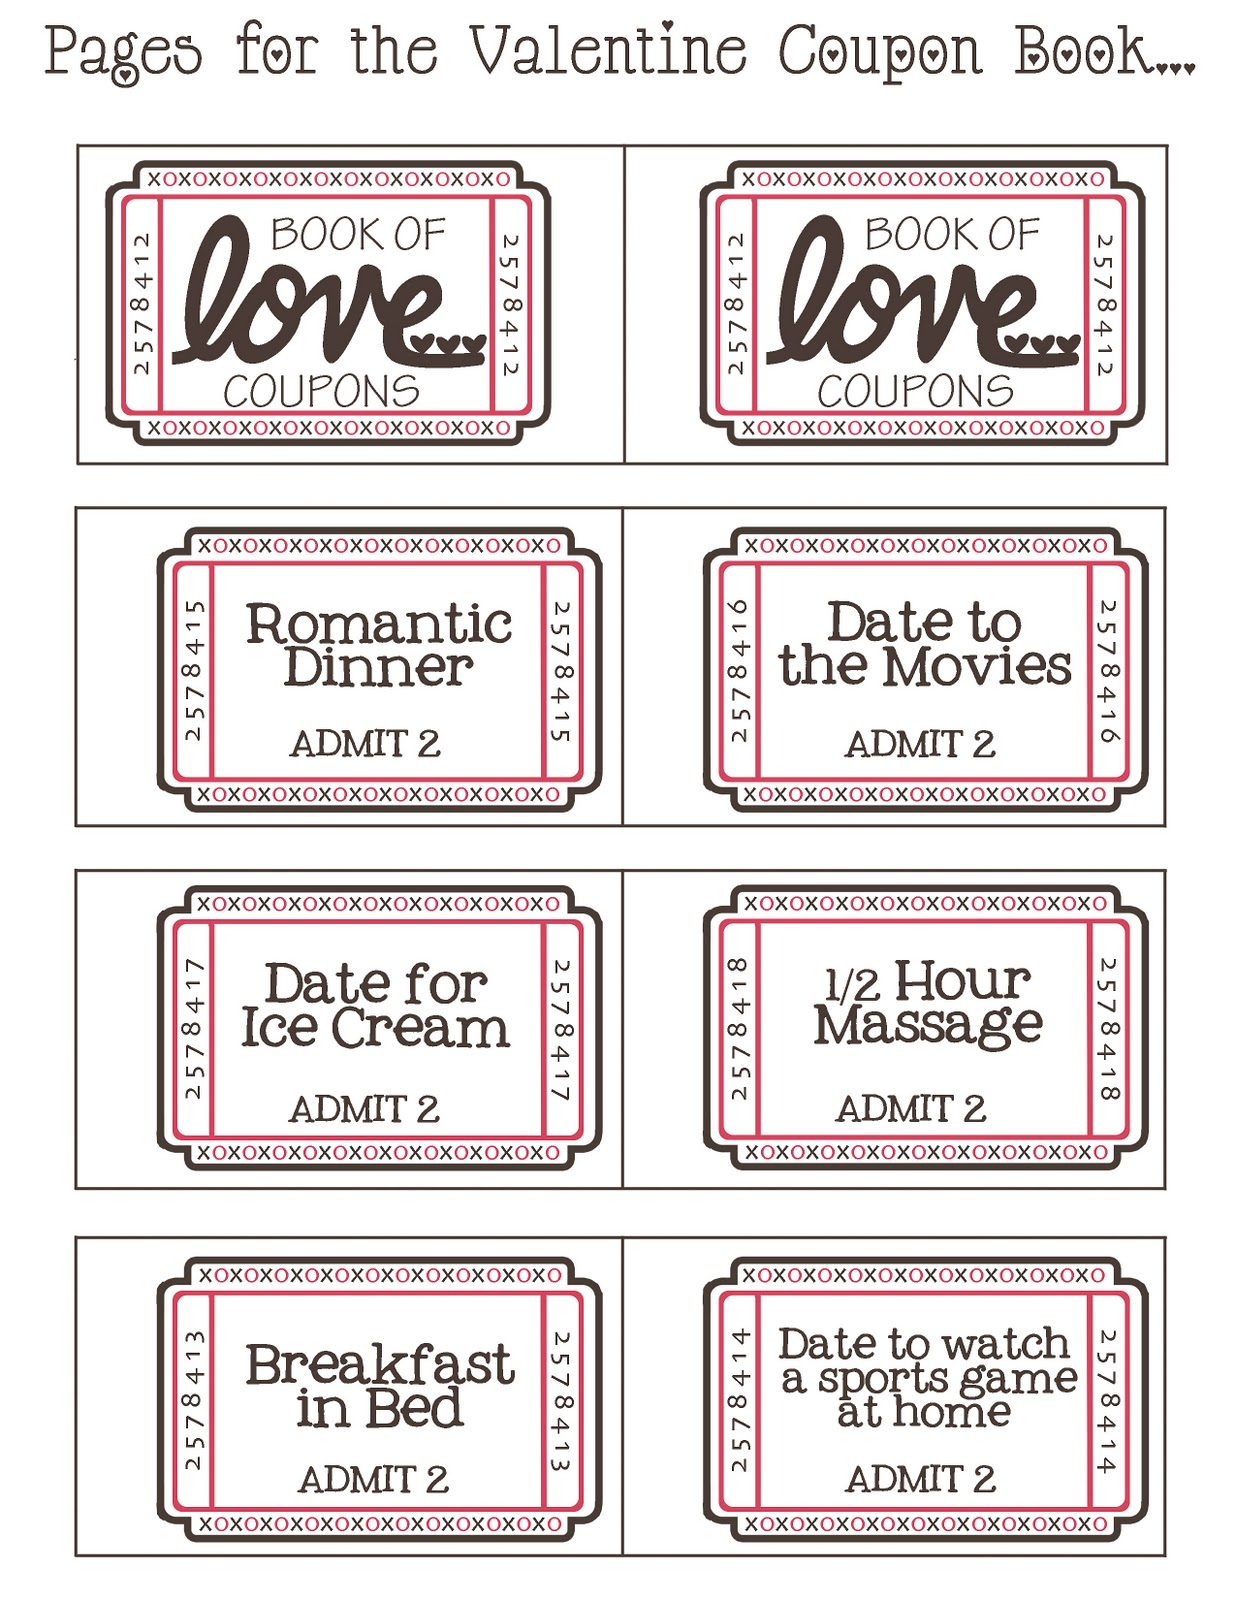 Love coupons capacity to love for Coupons for my boyfriend